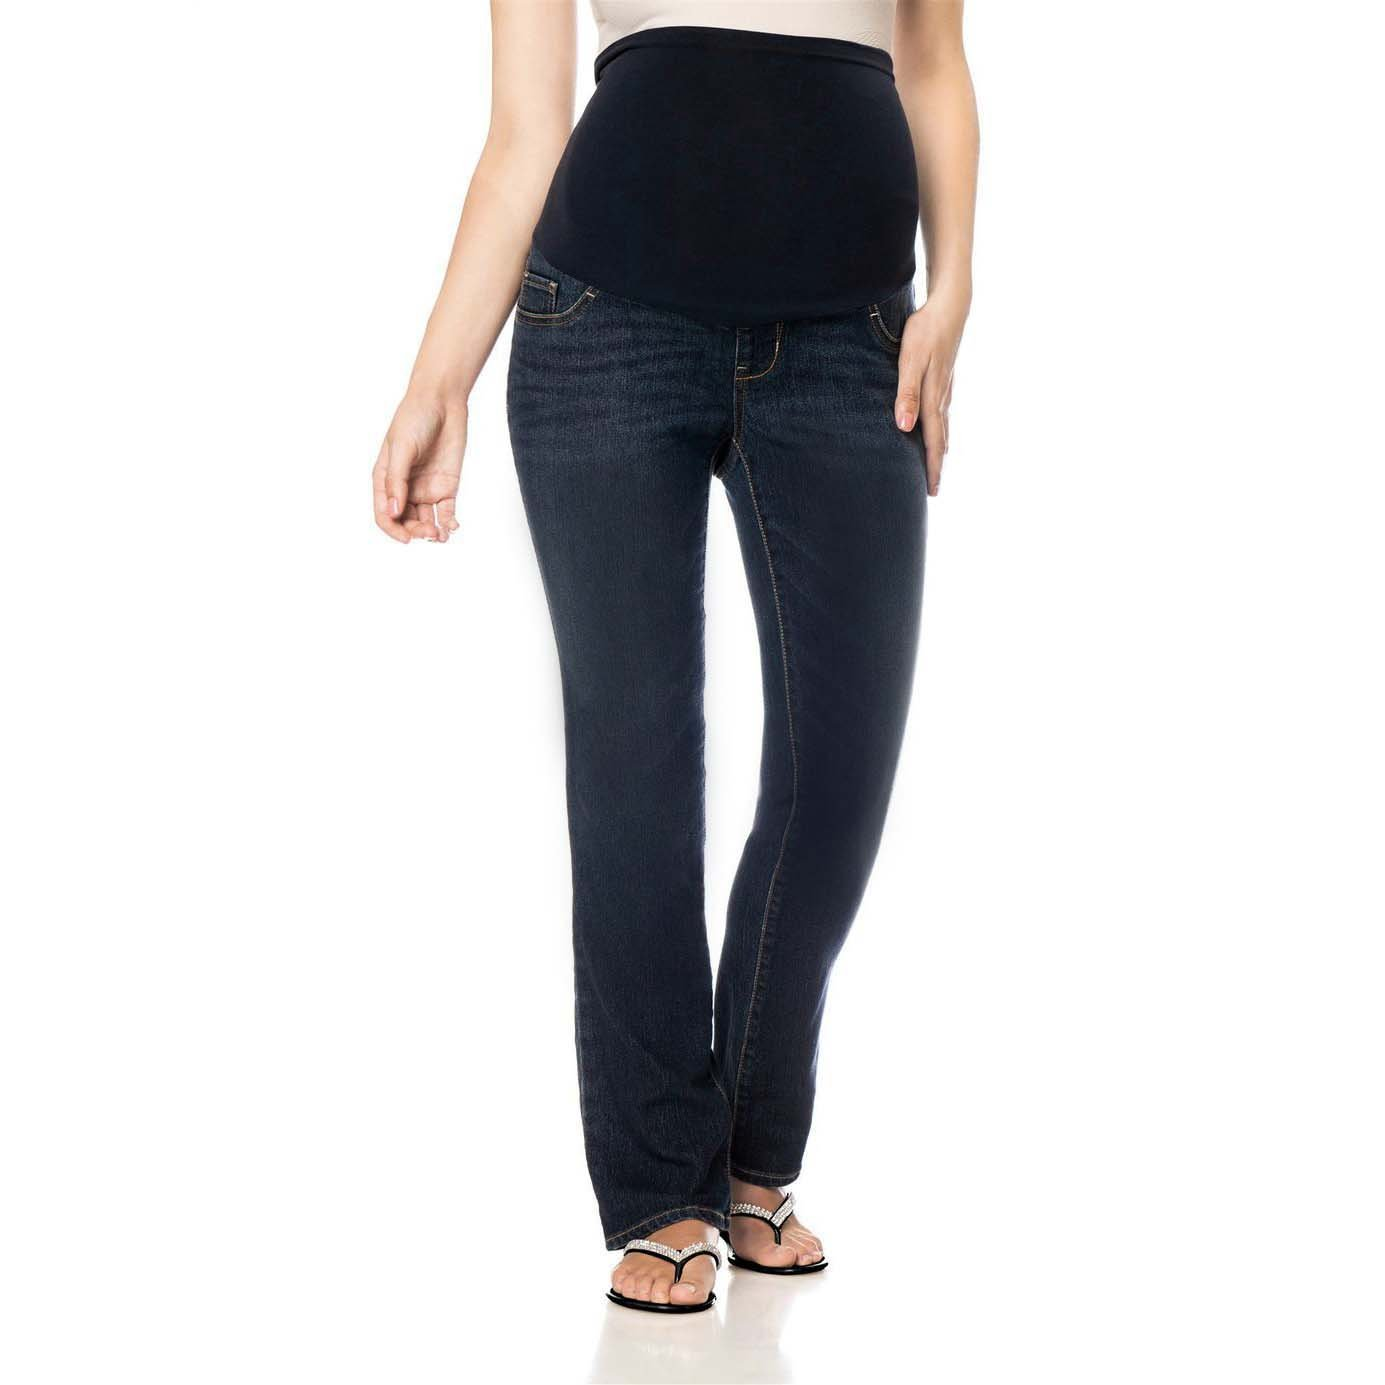 LizLang Maternity High Rise Bootcut Jeans for Women Pregnancy Stretch Pants with Full Panel Cute & Sexy